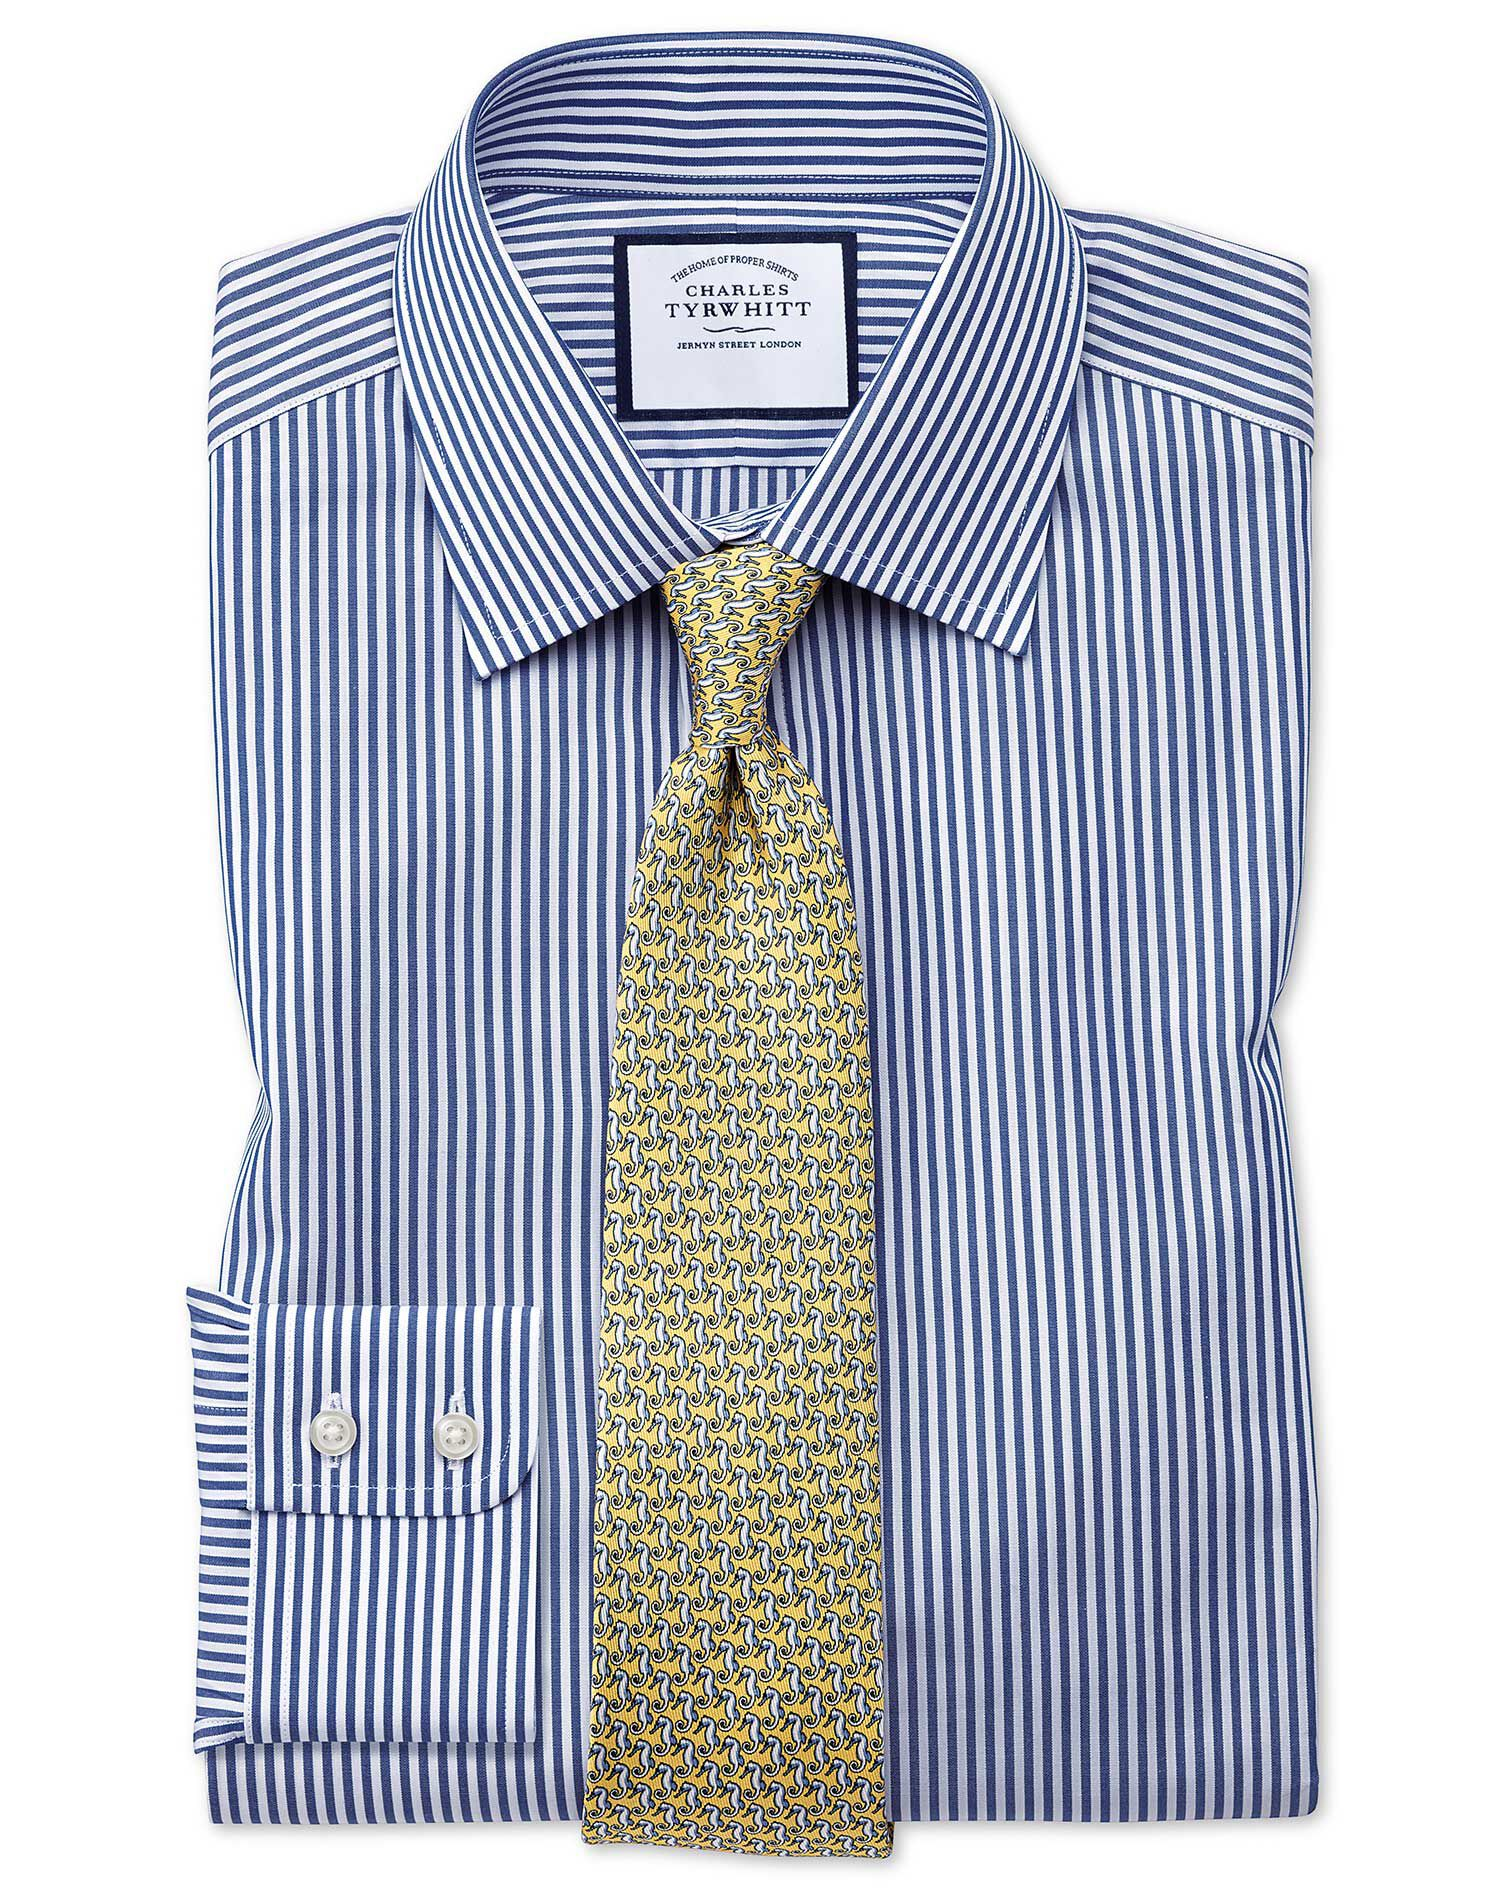 Slim Fit Bengal Stripe Navy Blue Cotton Formal Shirt Double Cuff Size 15.5/33 by Charles Tyrwhitt